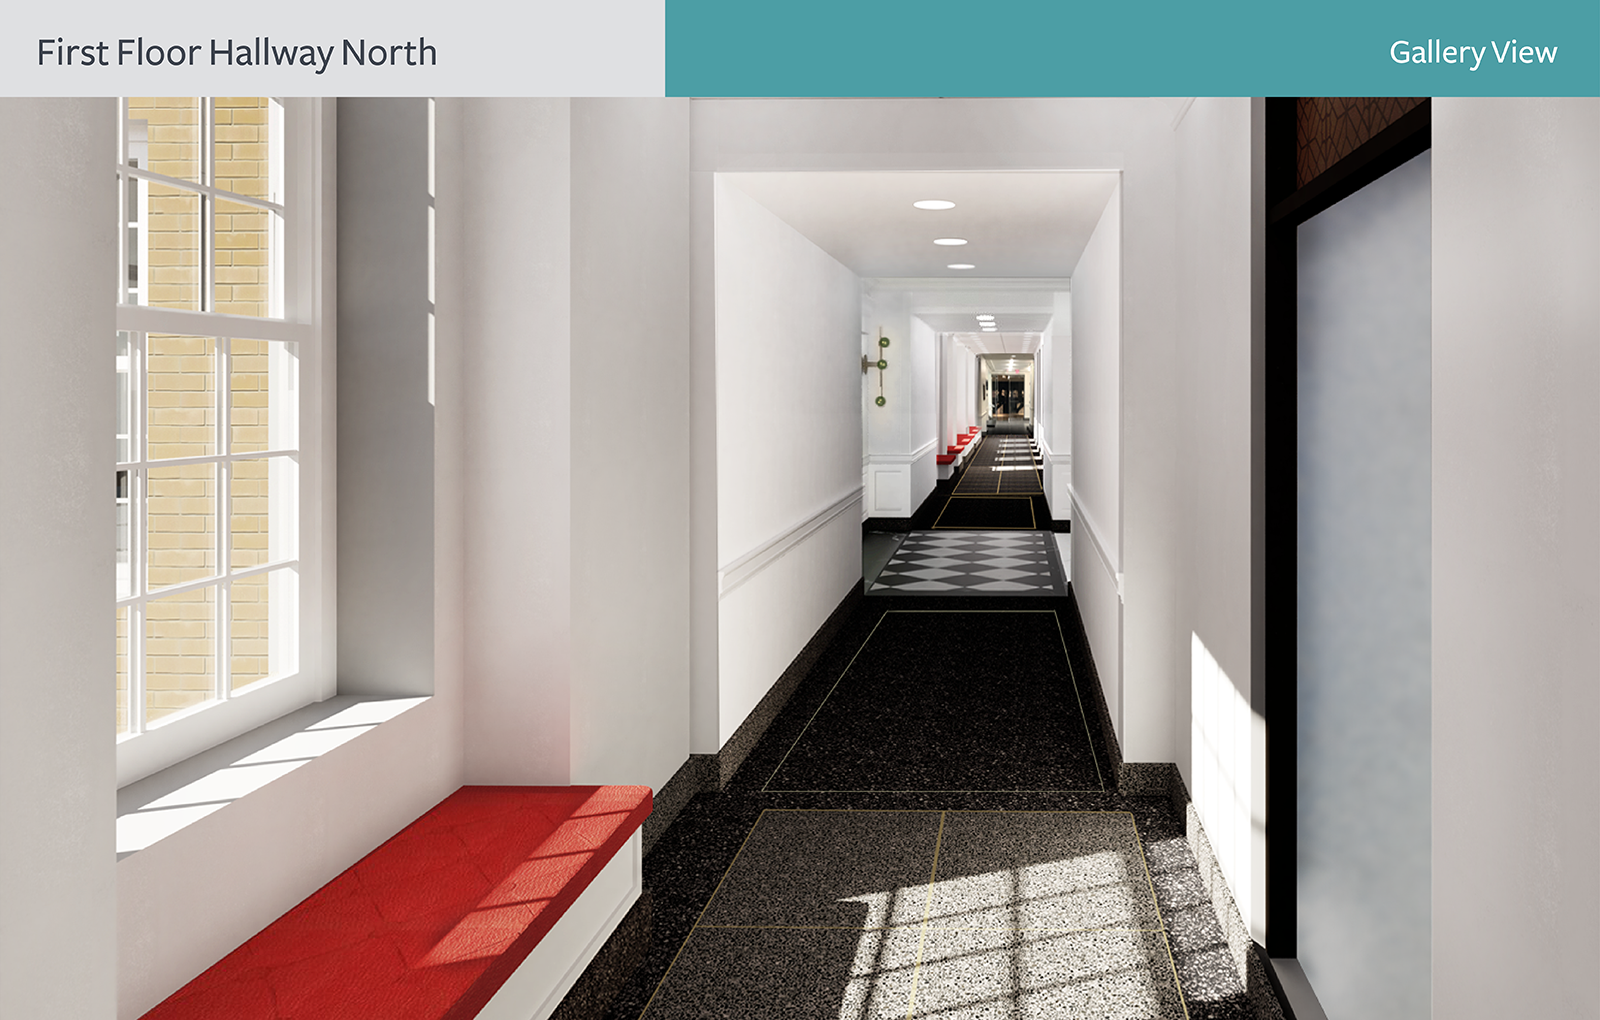 The rendering of First Floor Hallway North